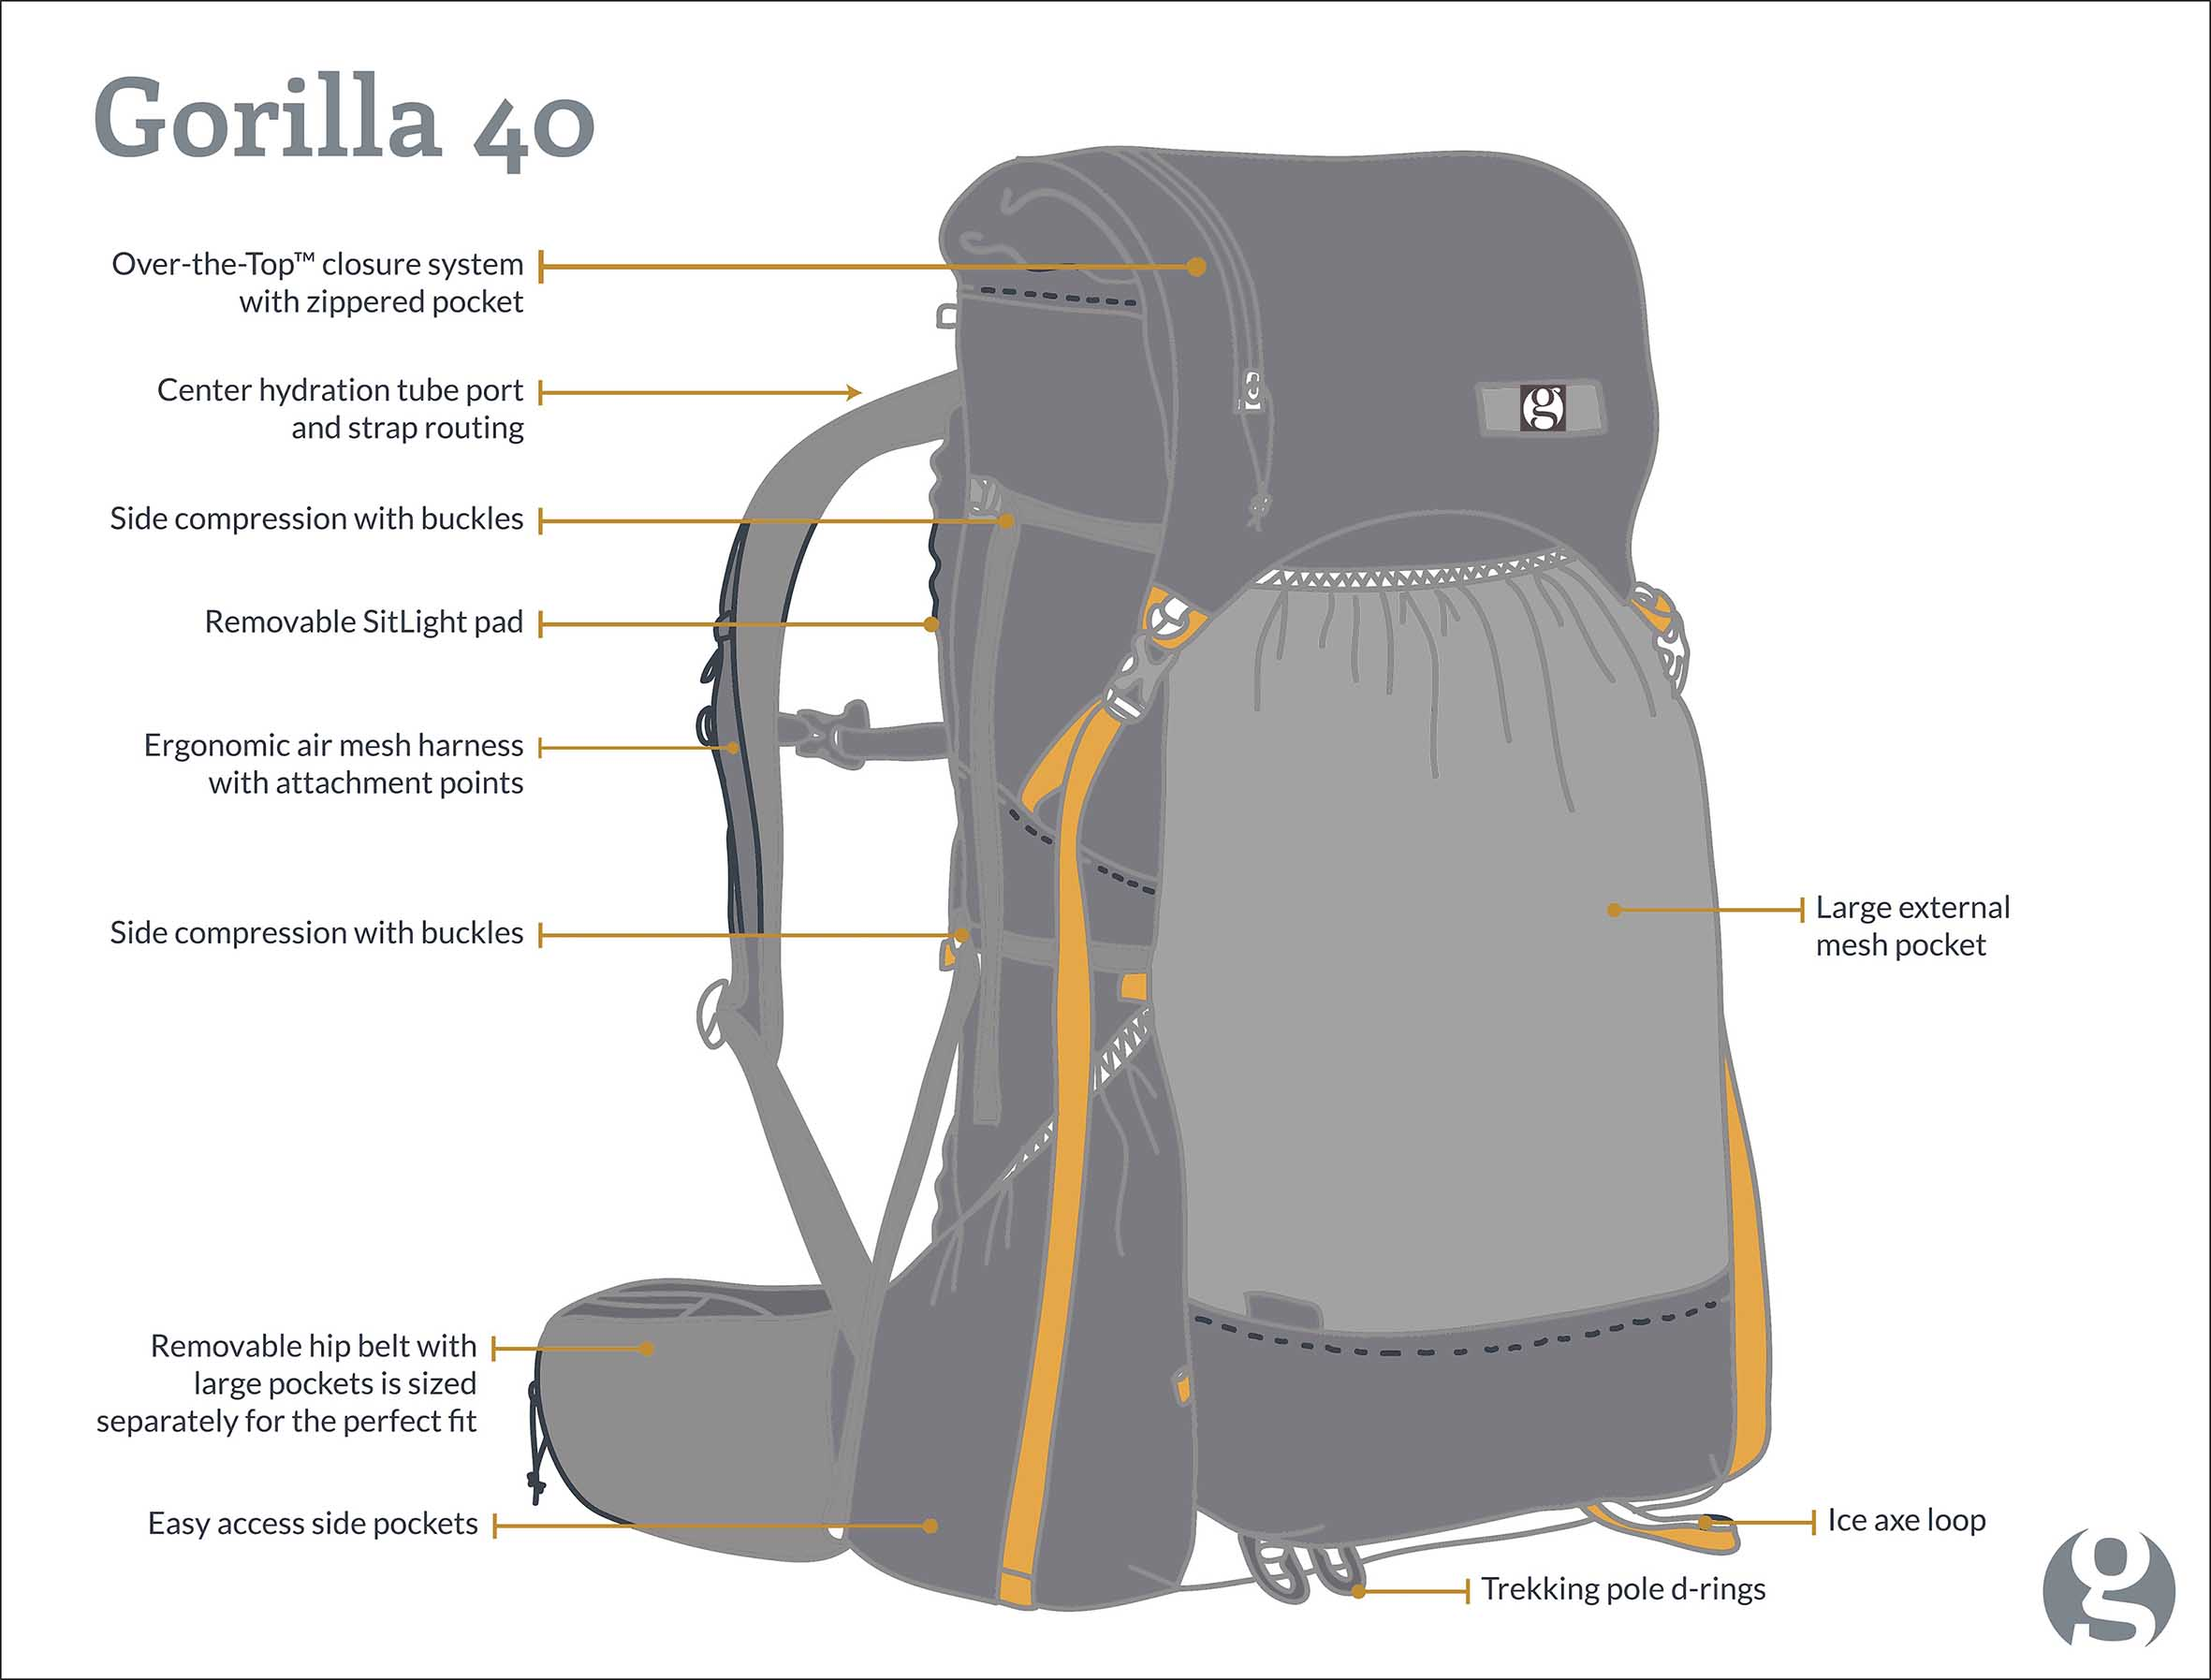 Gossamer Gear Gorilla 40 features